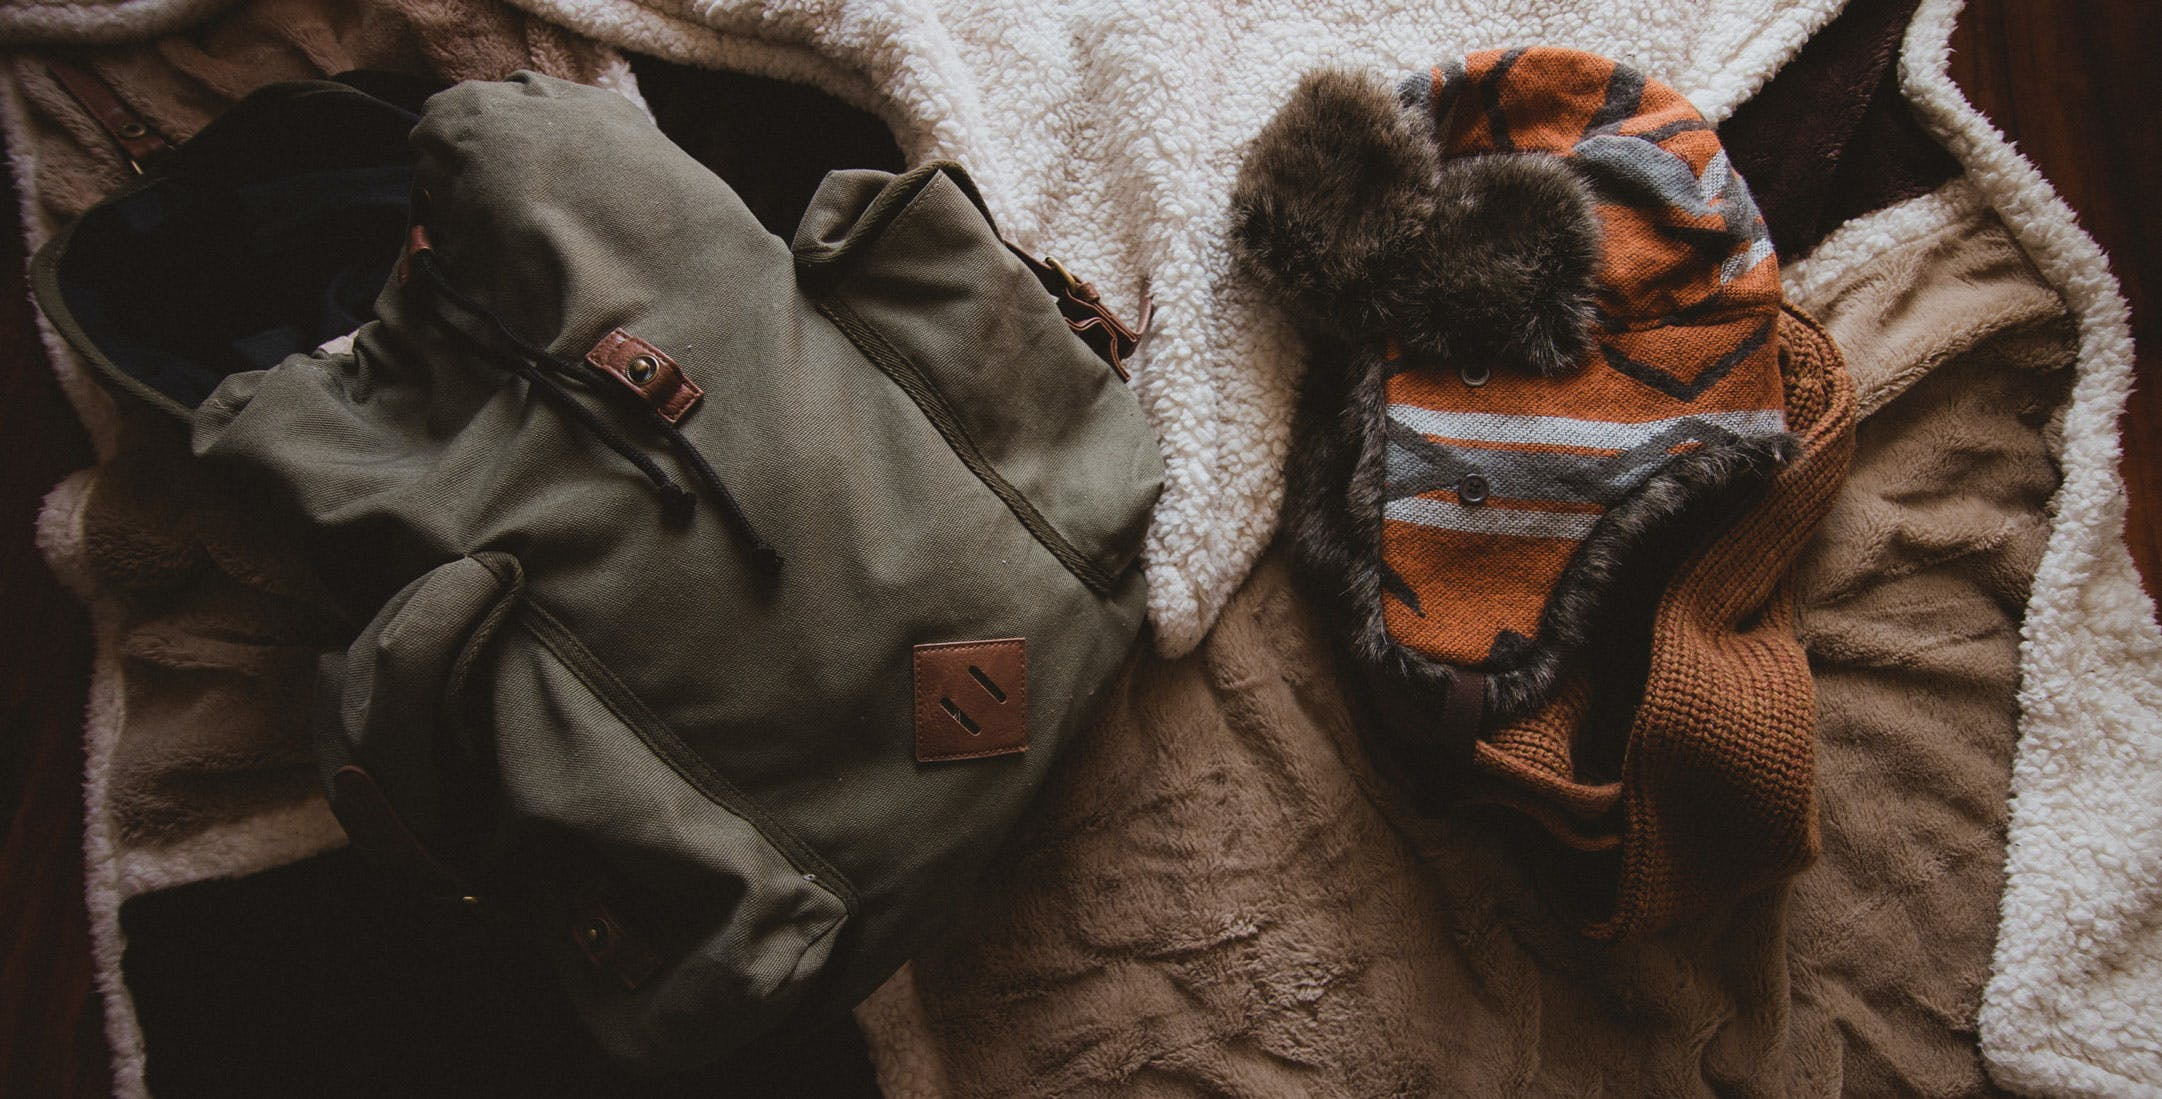 Gray Backpack Beside Orange Knit Hat